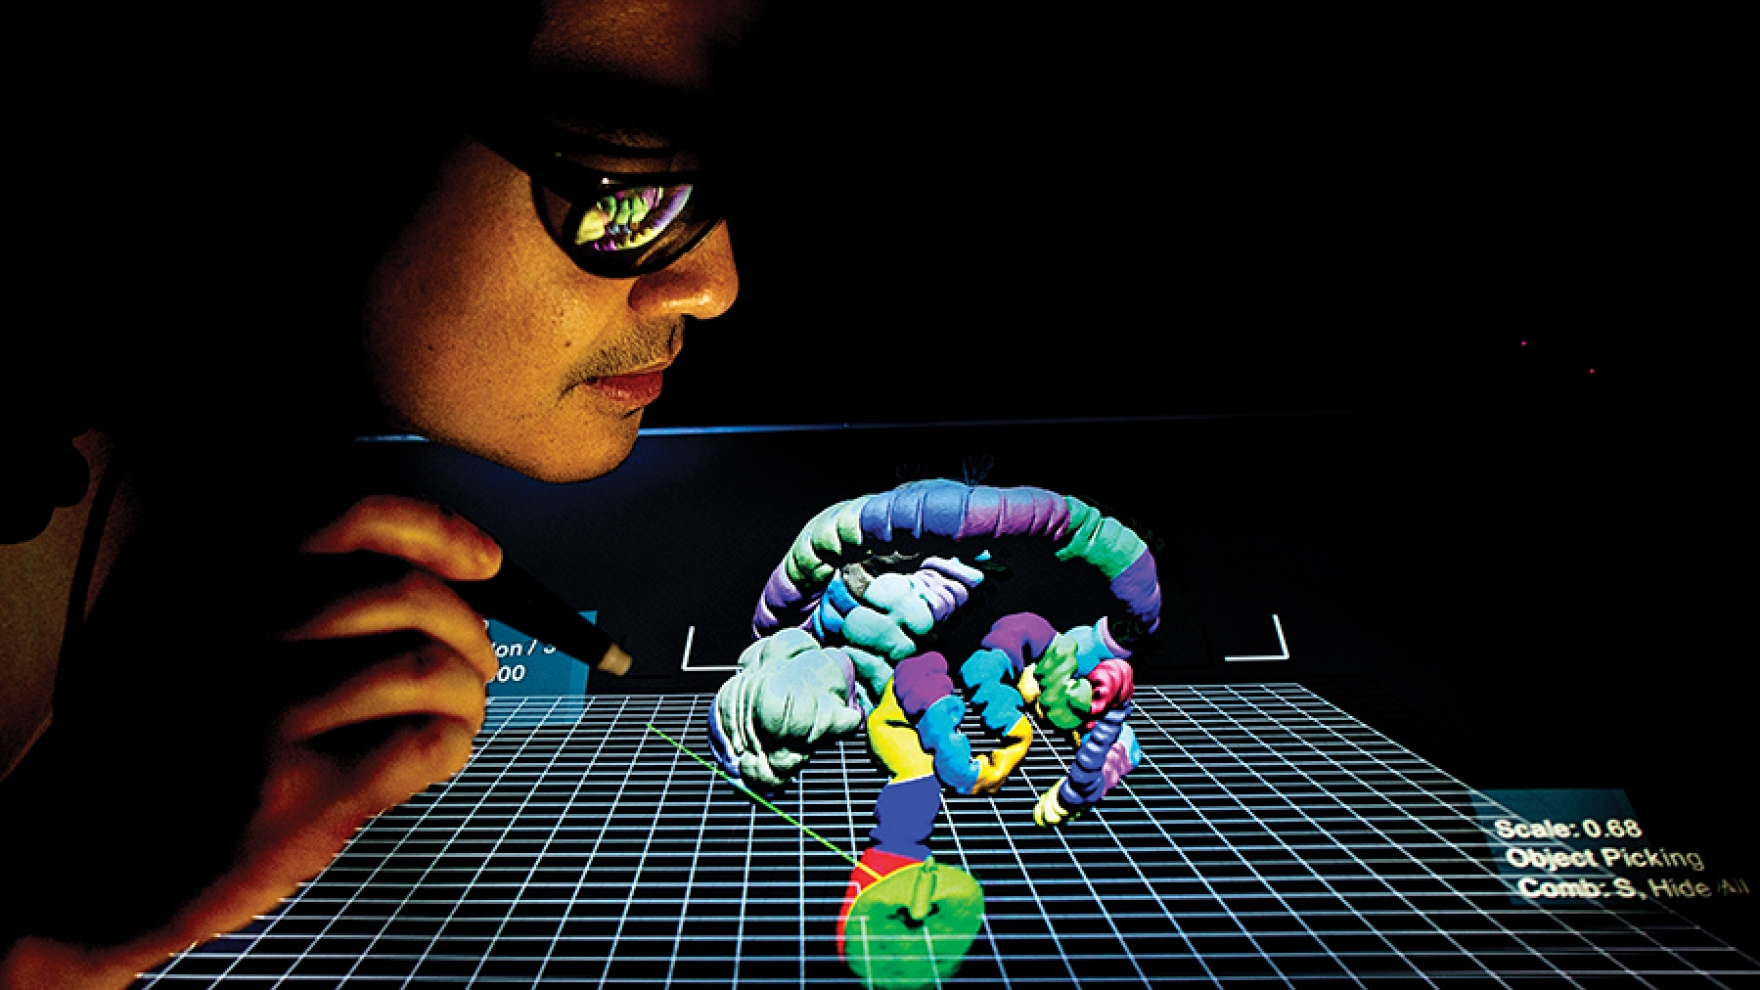 Donald Chau examining a 3-D portrayal of a colon